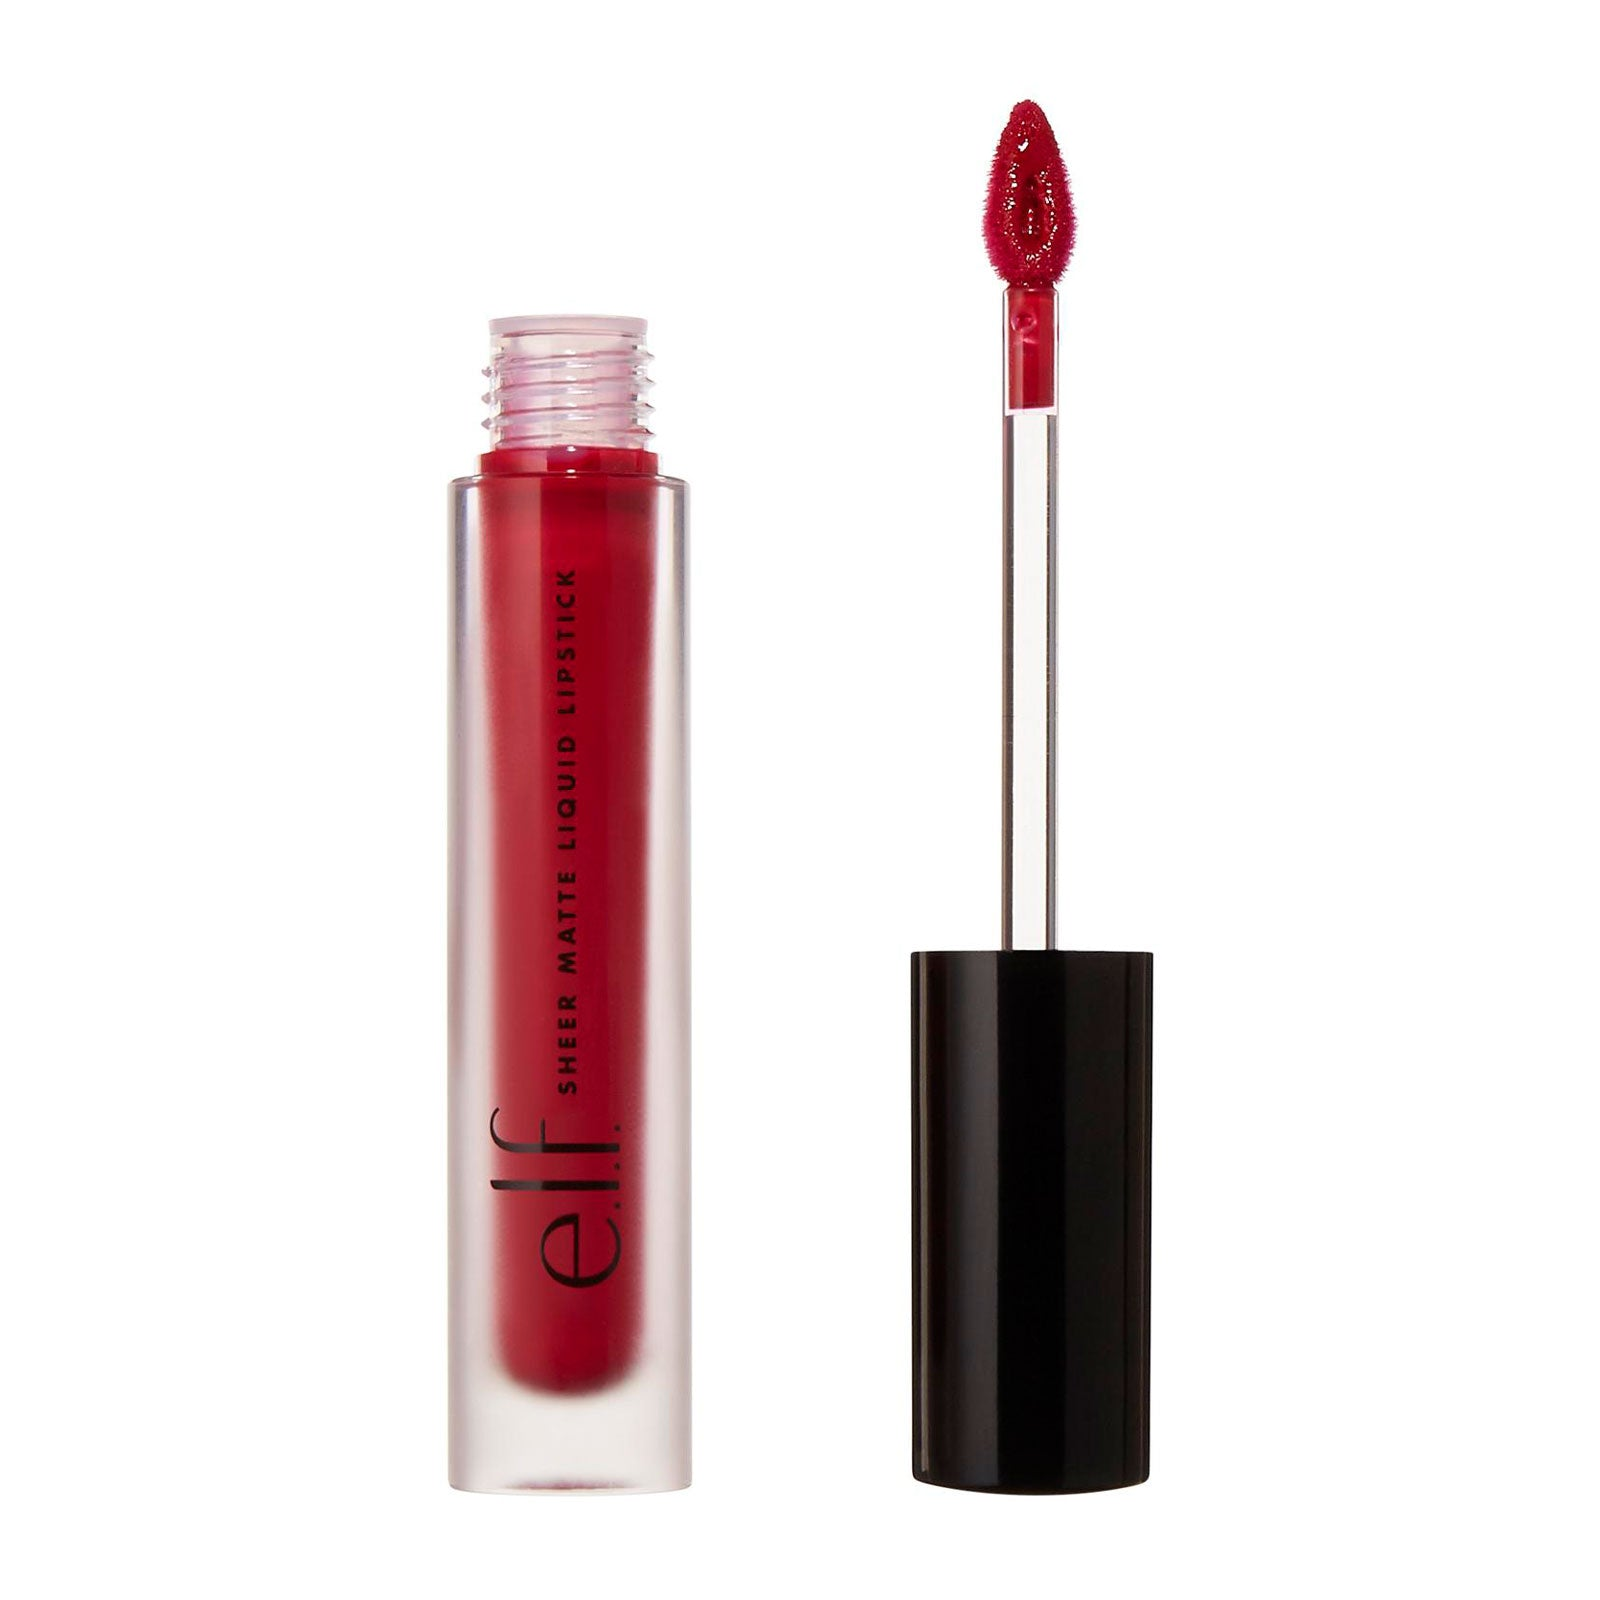 e.l.f. Sheer Matte Liquid Lipstick 3ml